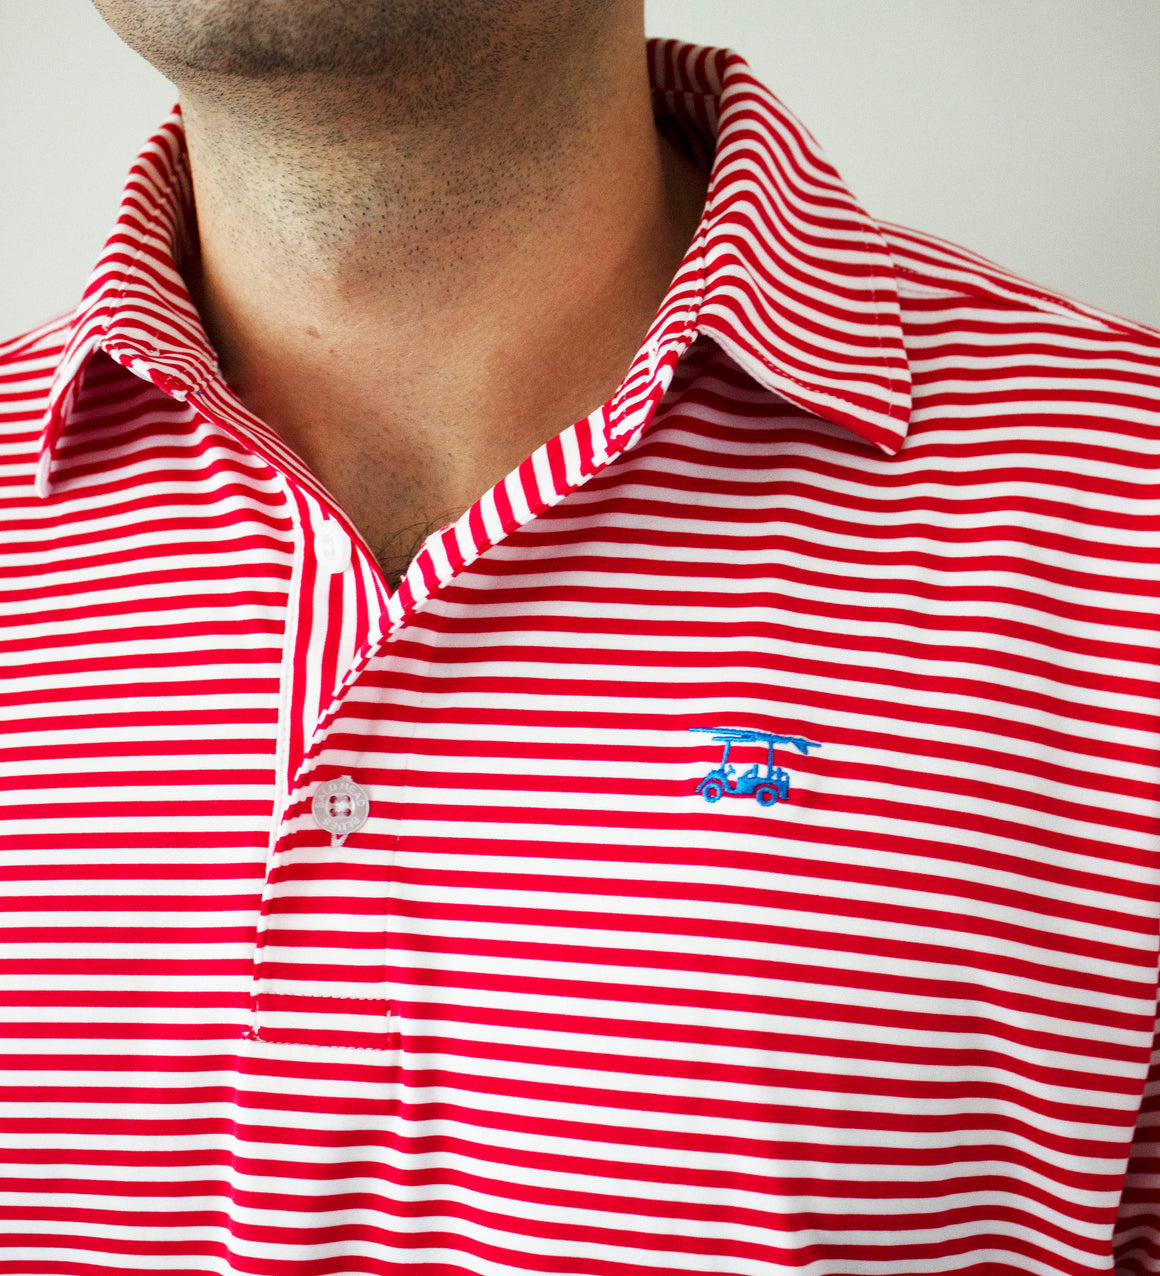 Albatross Polo - State Red / White Stripes